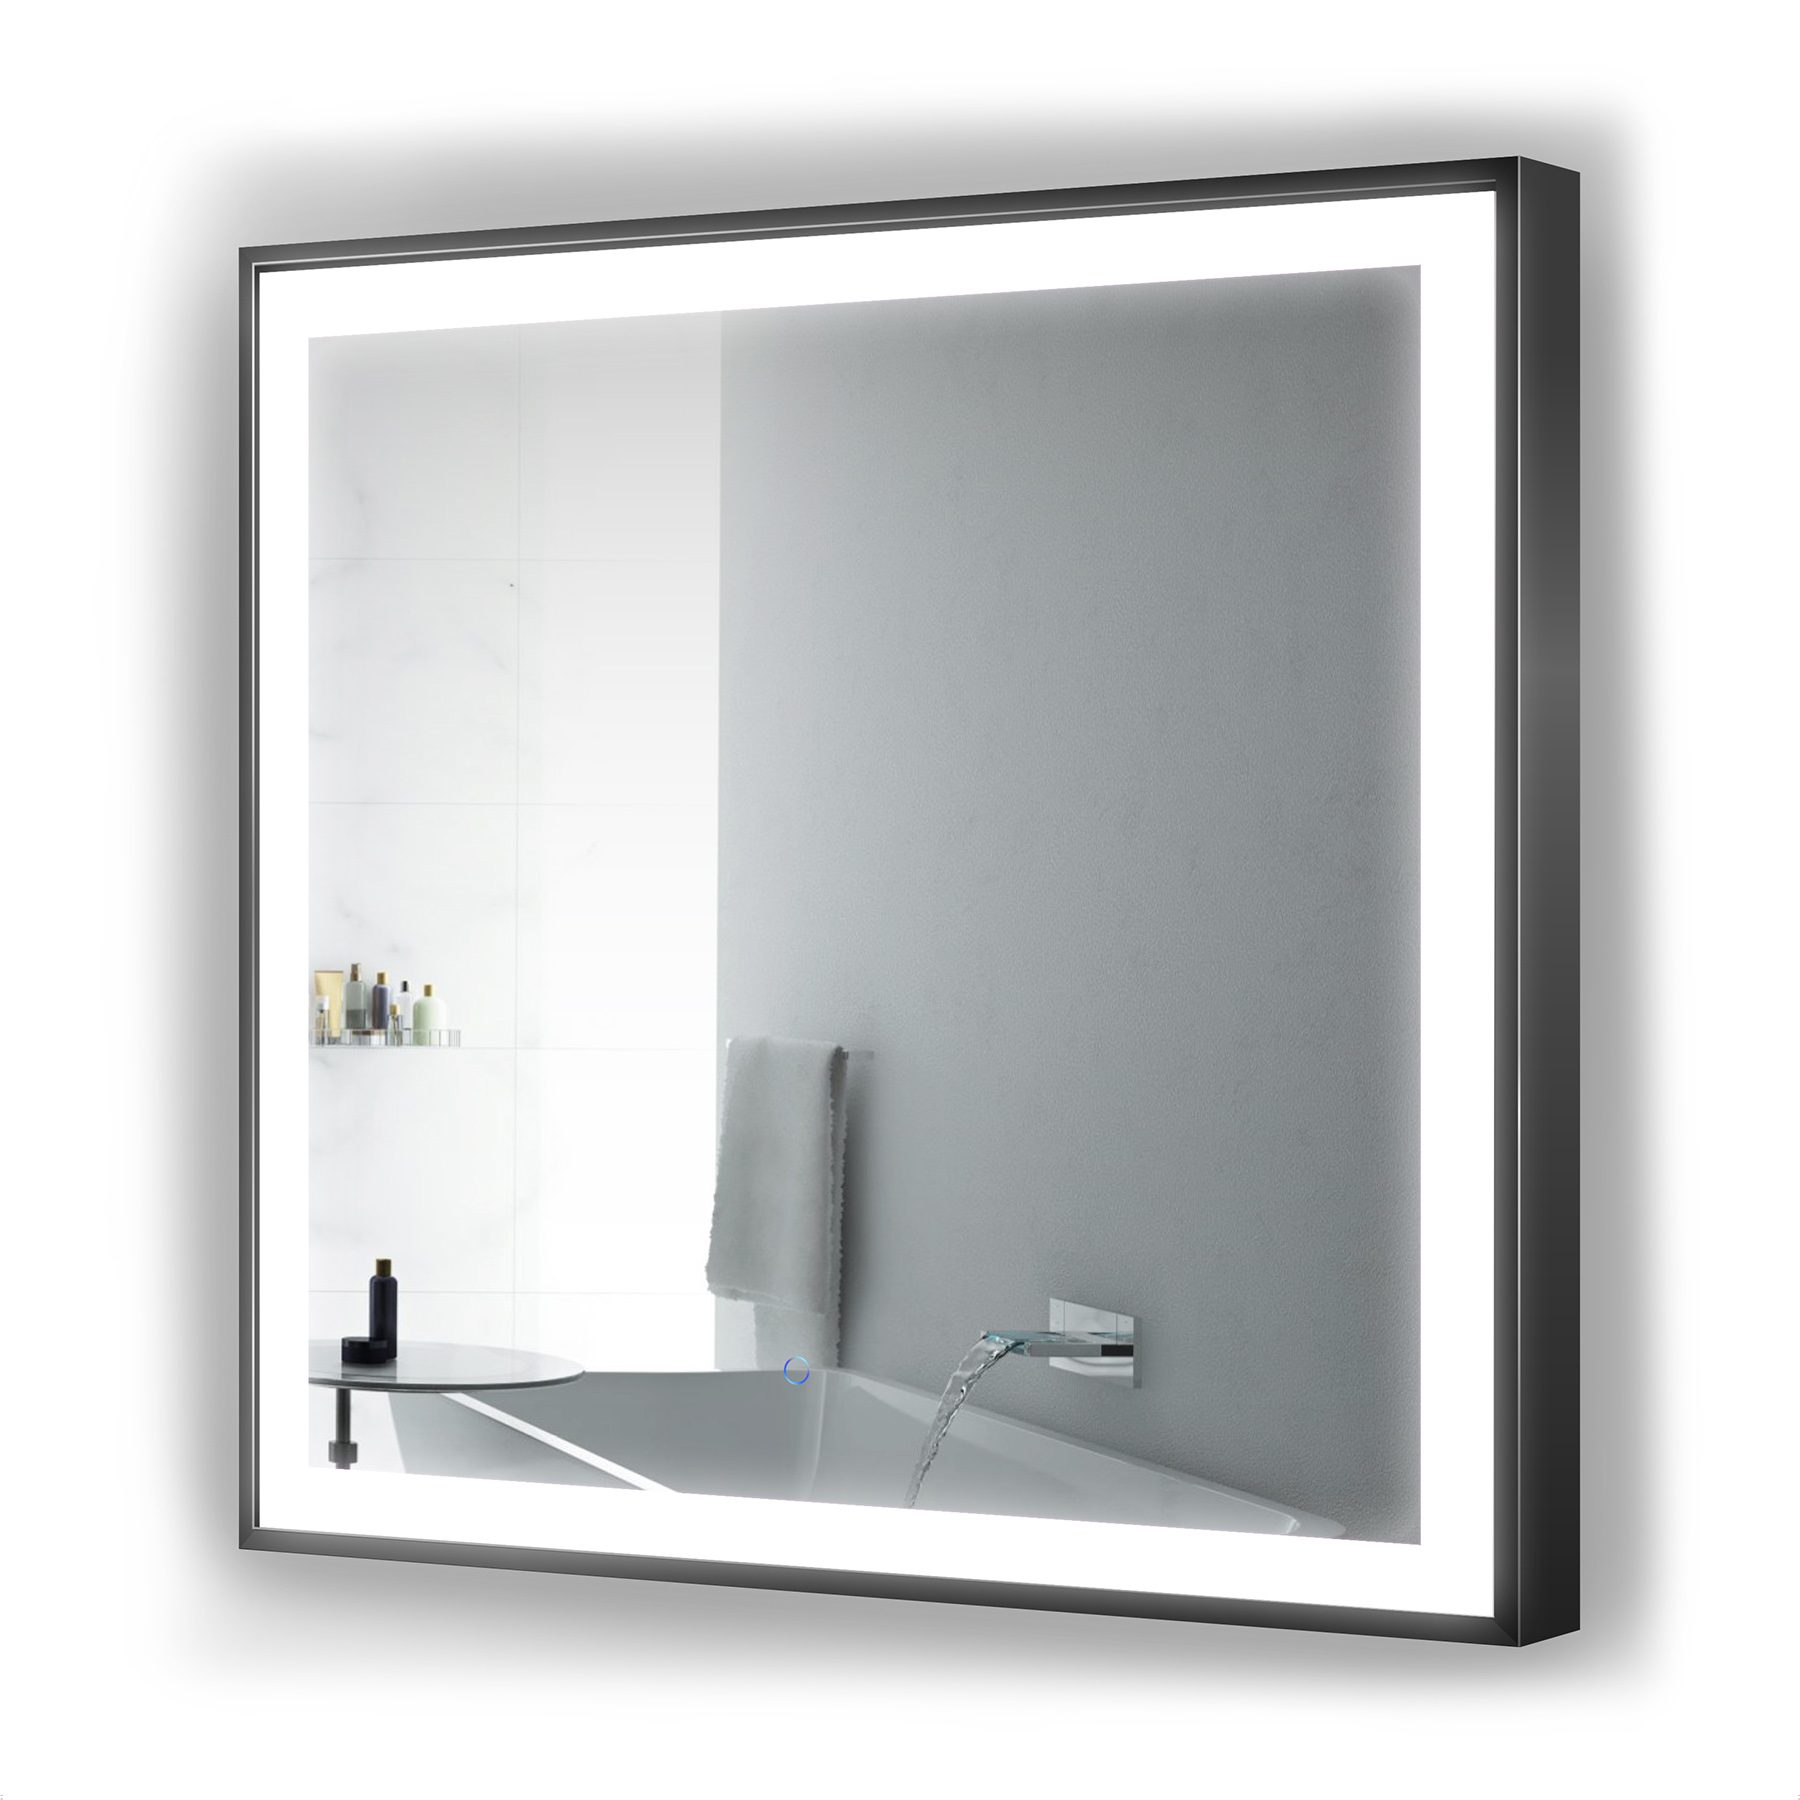 Krugg Soho LED Bathroom Mirror 36″ X 36″ Black